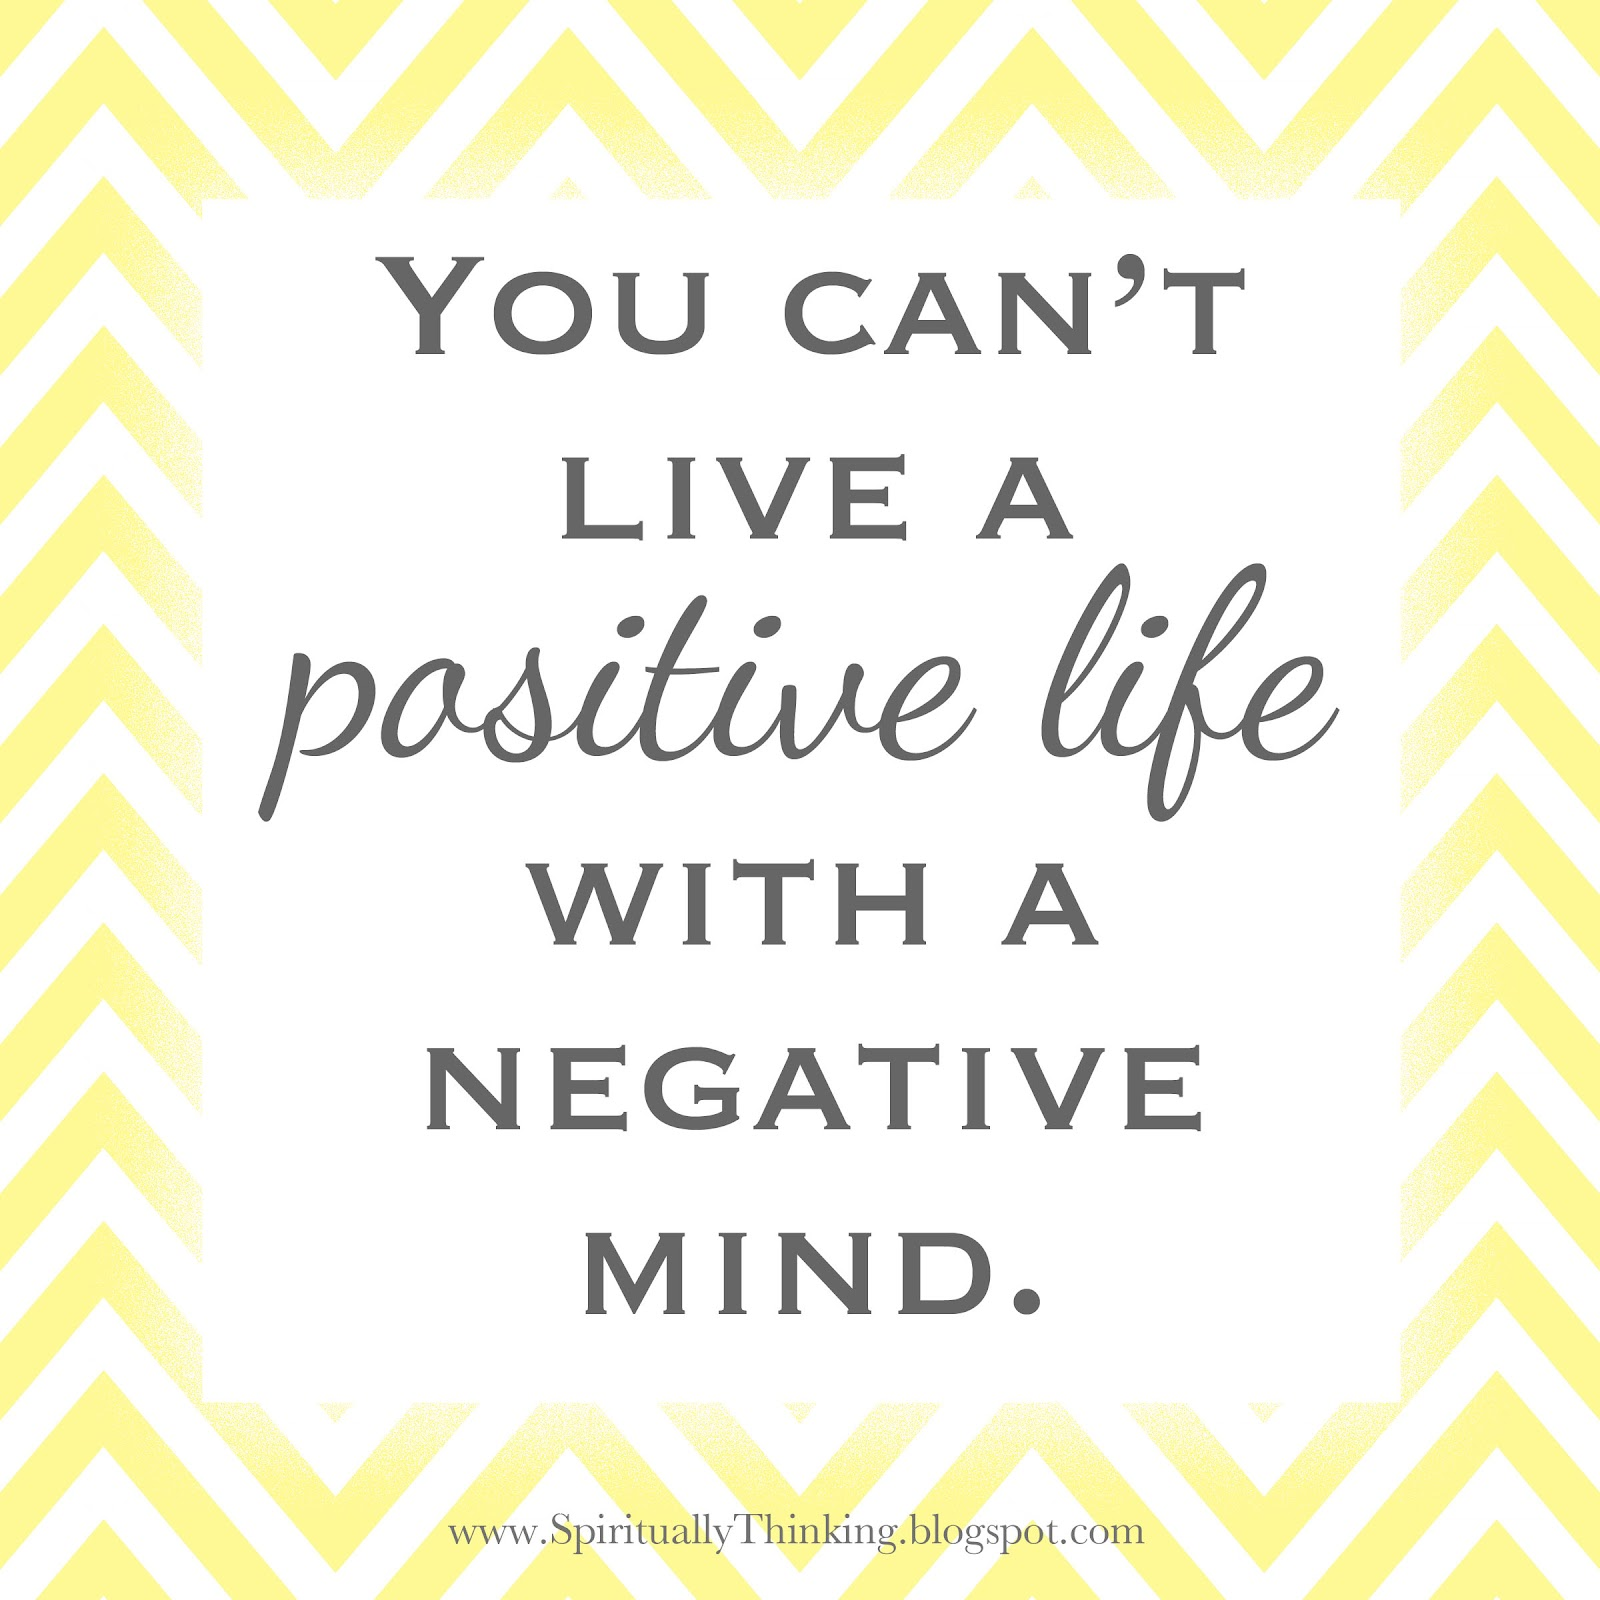 positive mind poistive life quotes